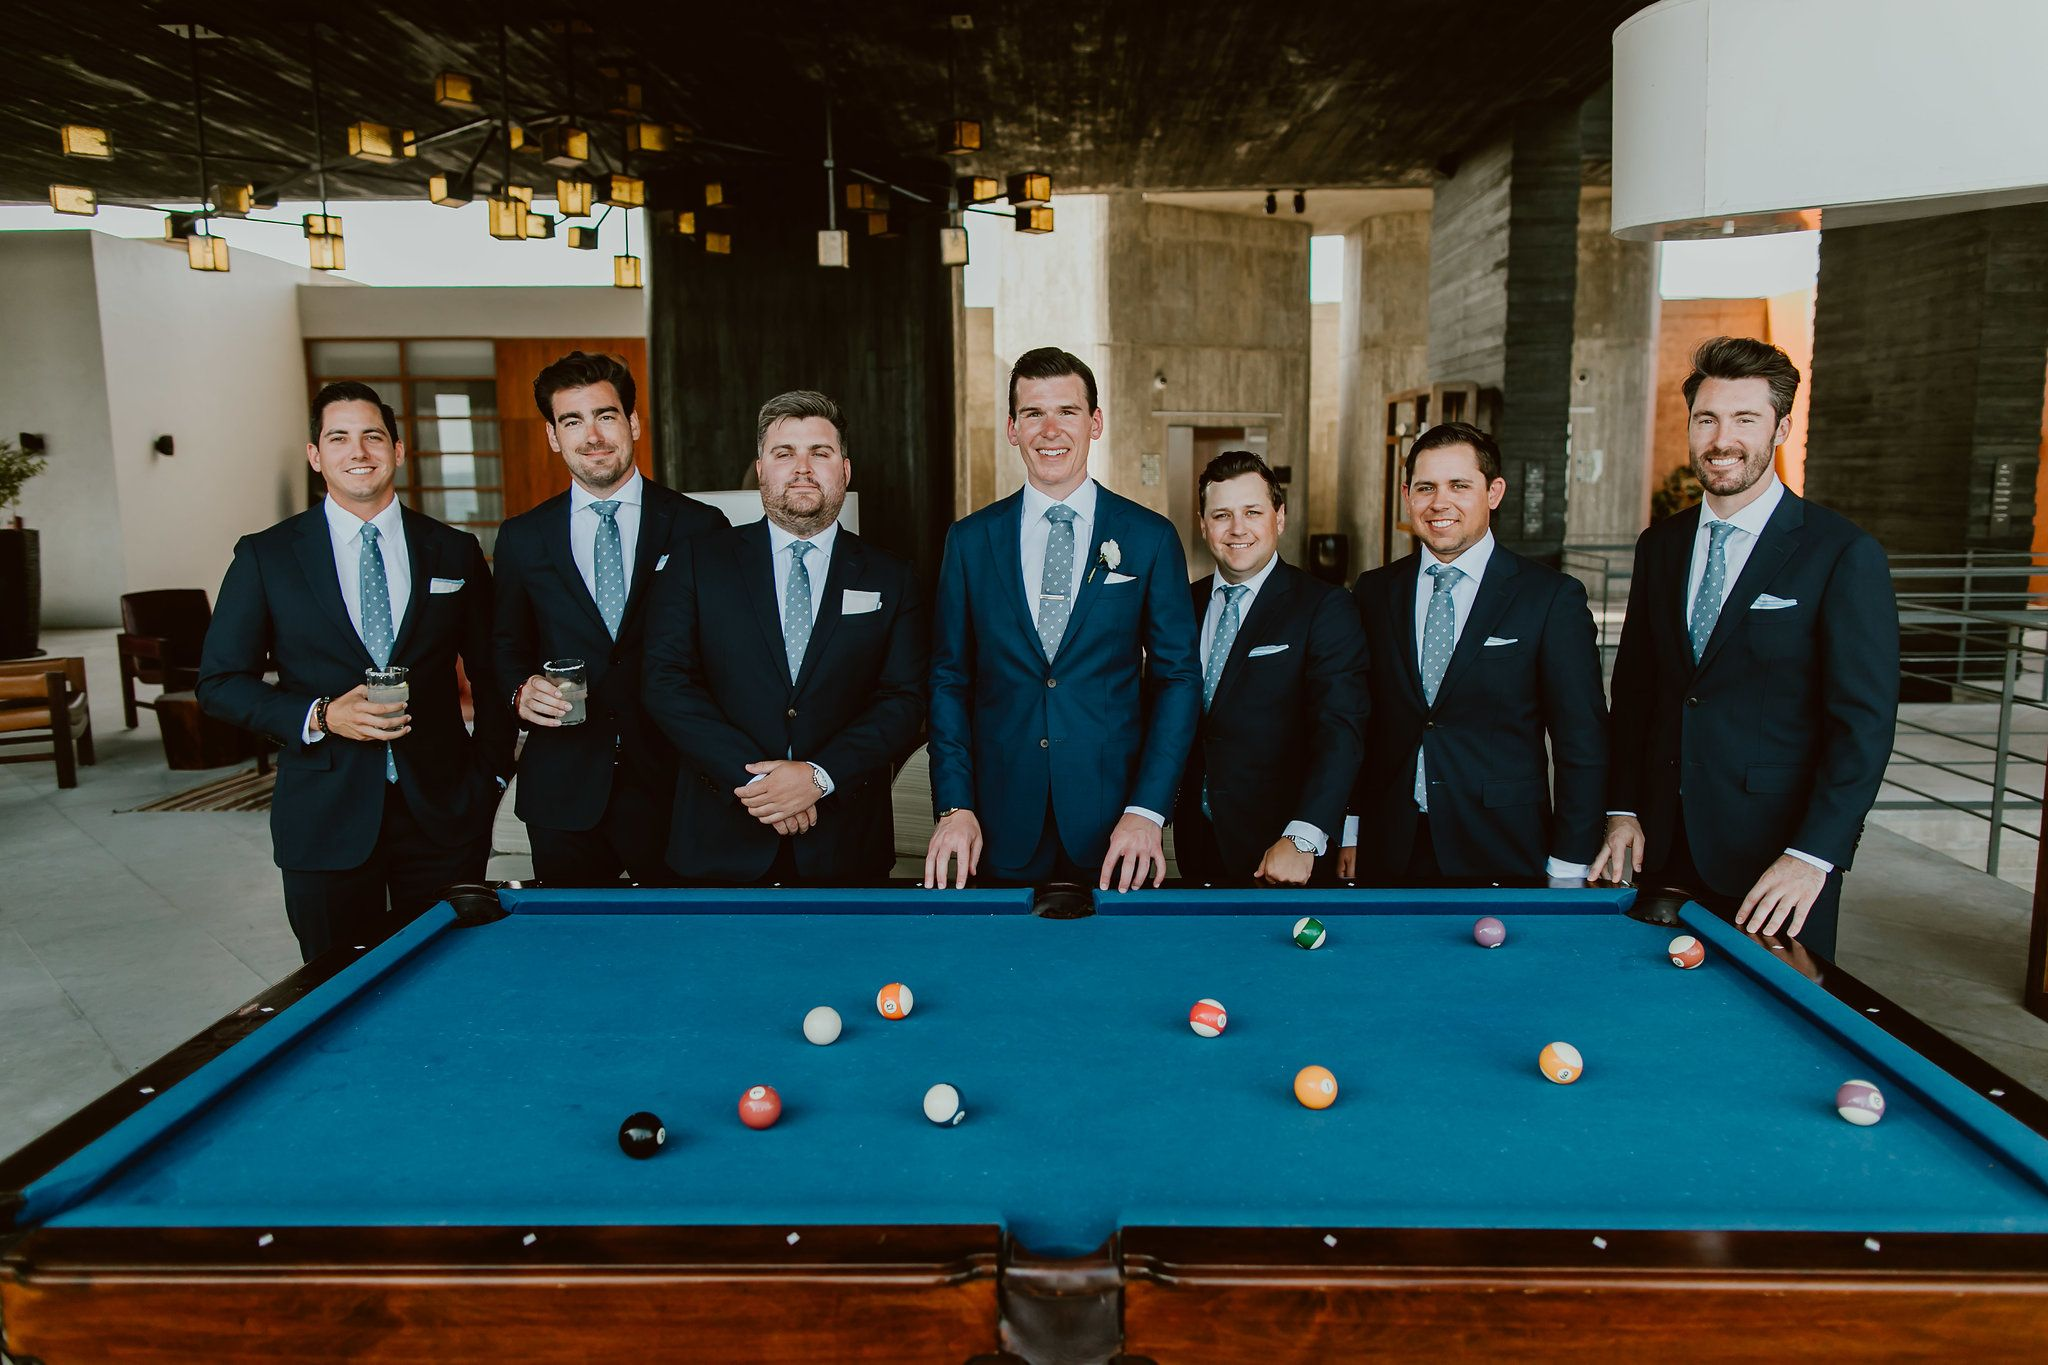 Groom and Groomsmen posing by the Pool Table at the Lobby bar at The Cape in Cabo San Lucas, Mexico. Wedding planning and design by Cabo Wedding Services